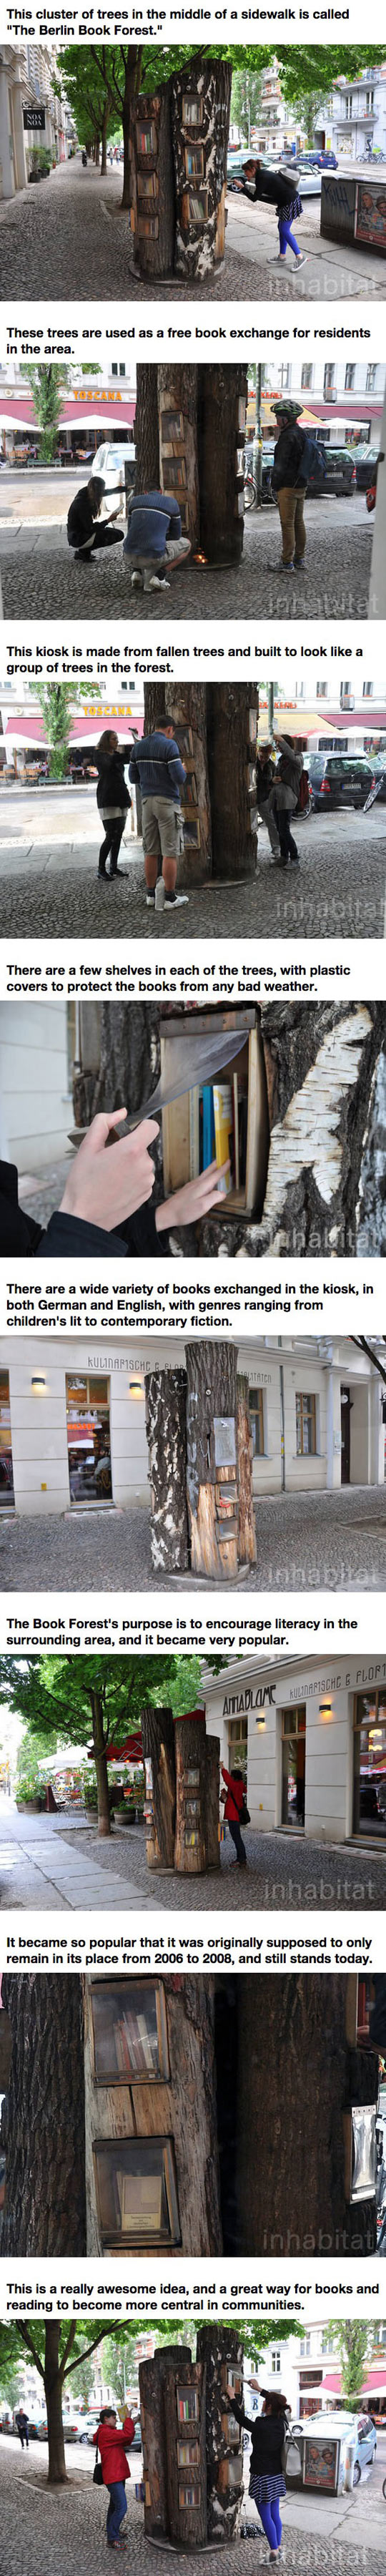 funny-Berlin-book-forest-Germany